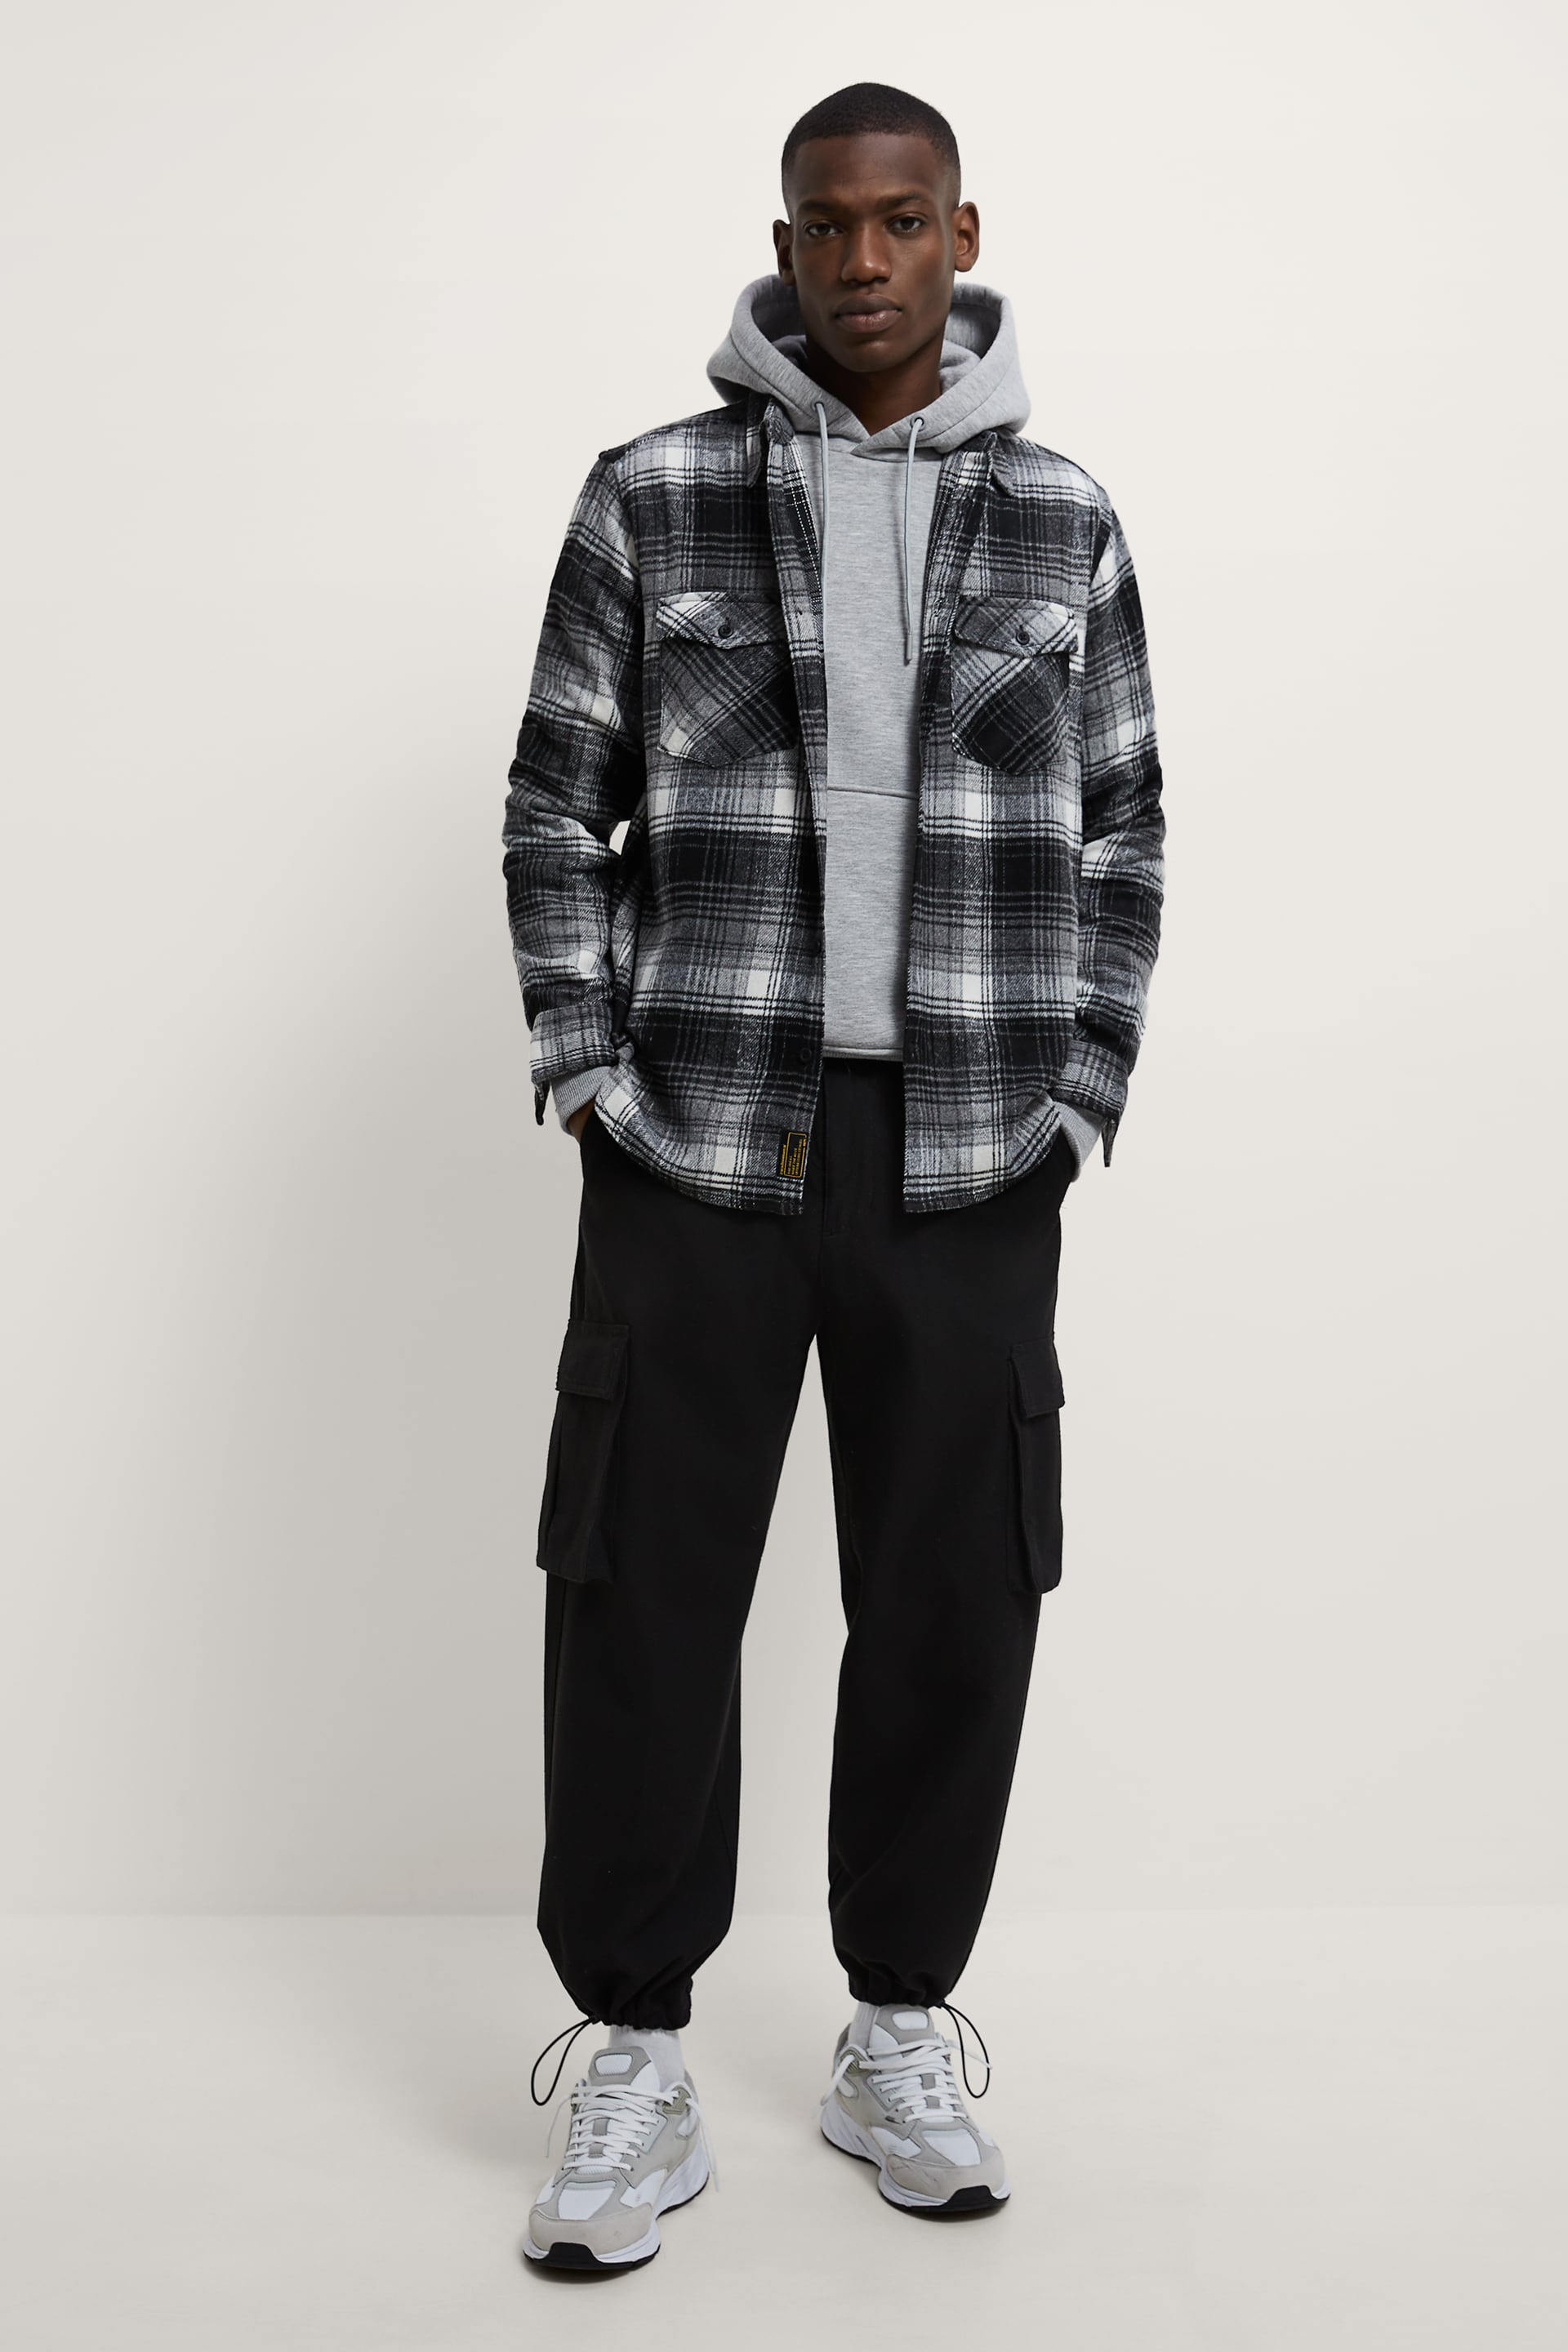 How to style / wear flannel